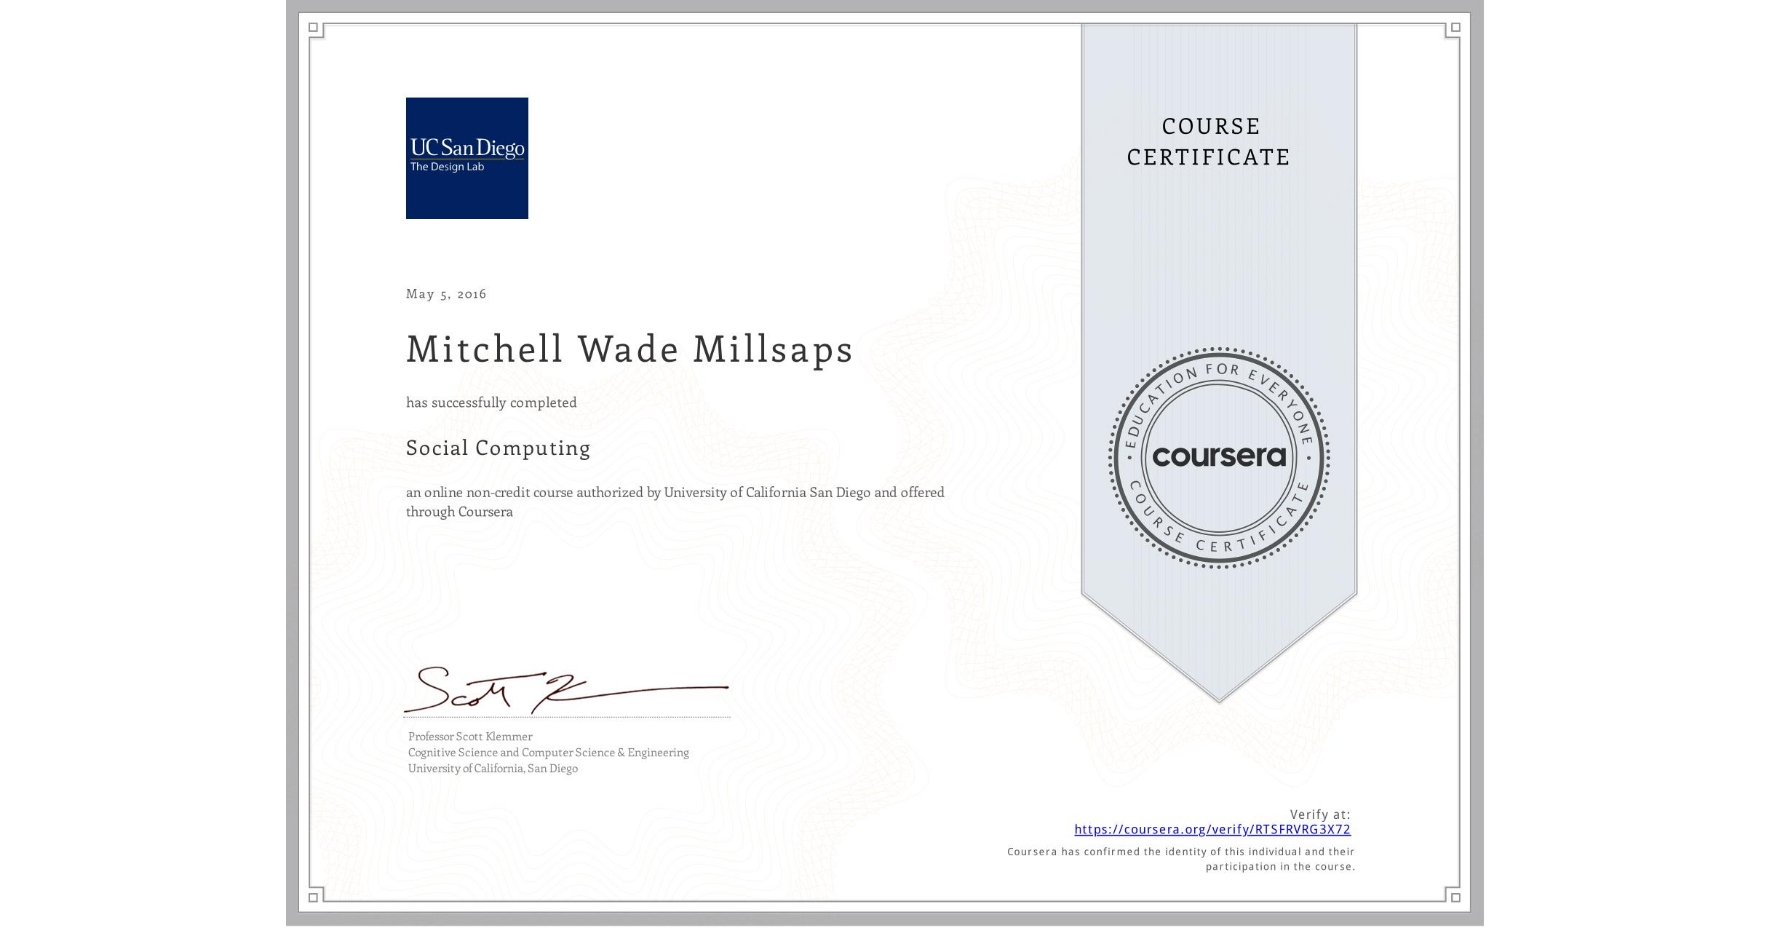 View certificate for Mitchell Wade Millsaps, Social Computing, an online non-credit course authorized by University of California San Diego and offered through Coursera